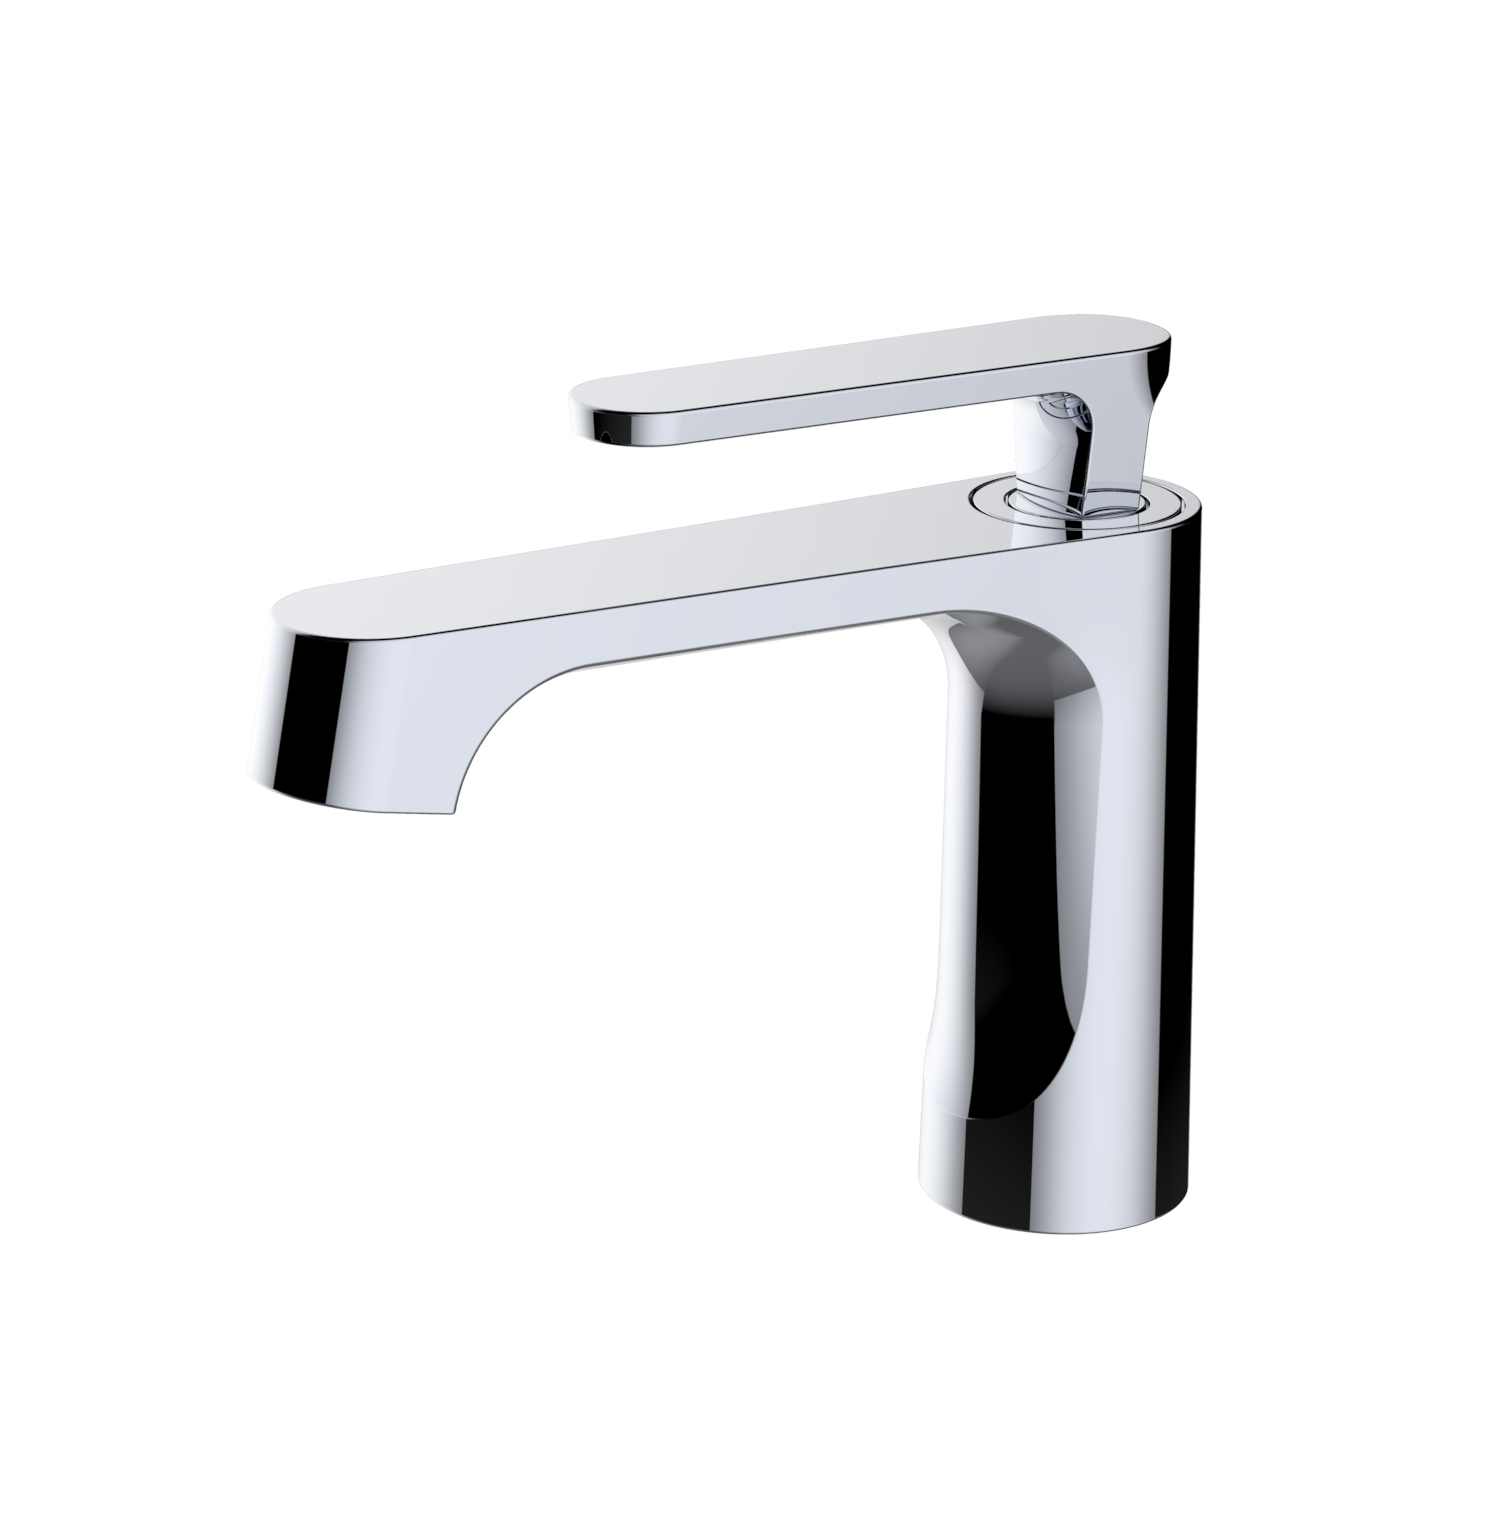 Hramsa Latest Design Small Size Cold Water Tap Drinking Cold Basin Faucet Buy Water Tap Cold Basin Faucet Cold Tap Product On Alibaba Com